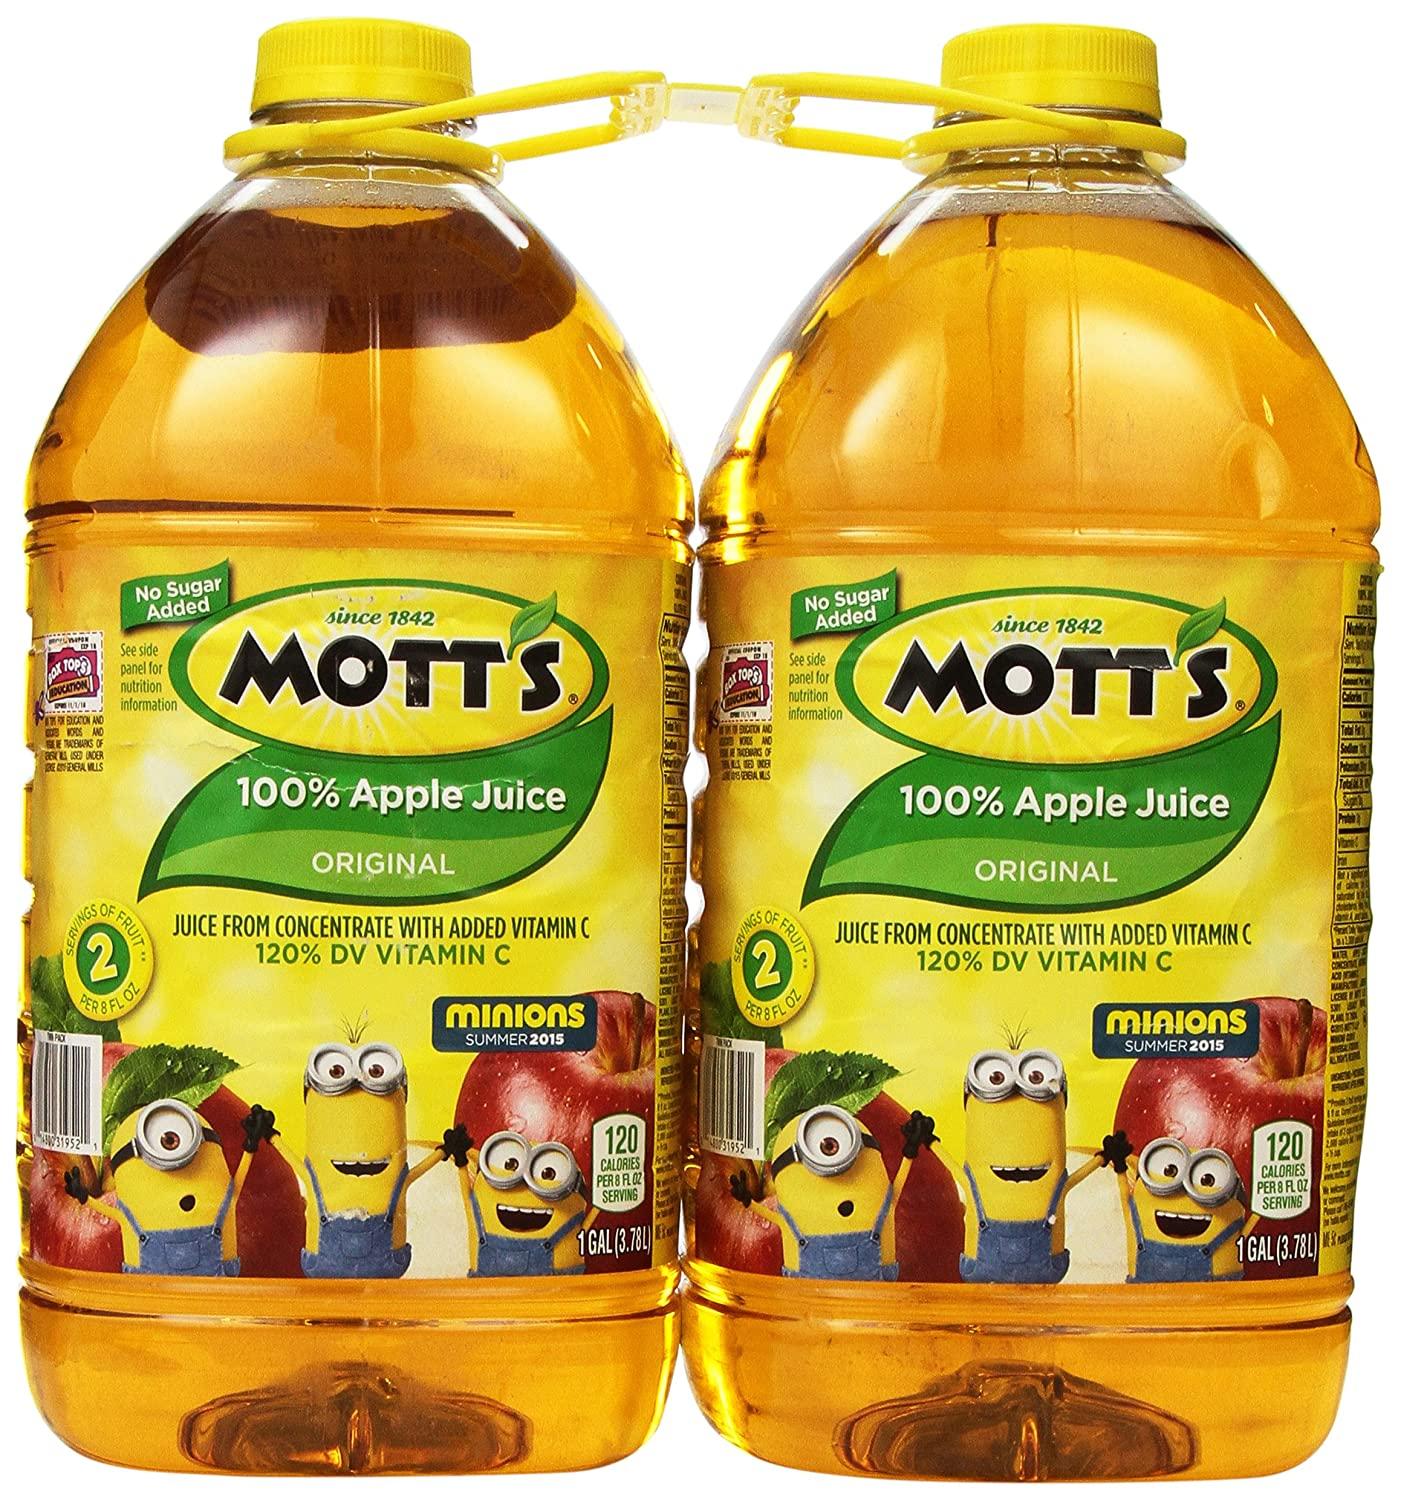 Motts Original Apple Juice, 256 Fluid Ounce